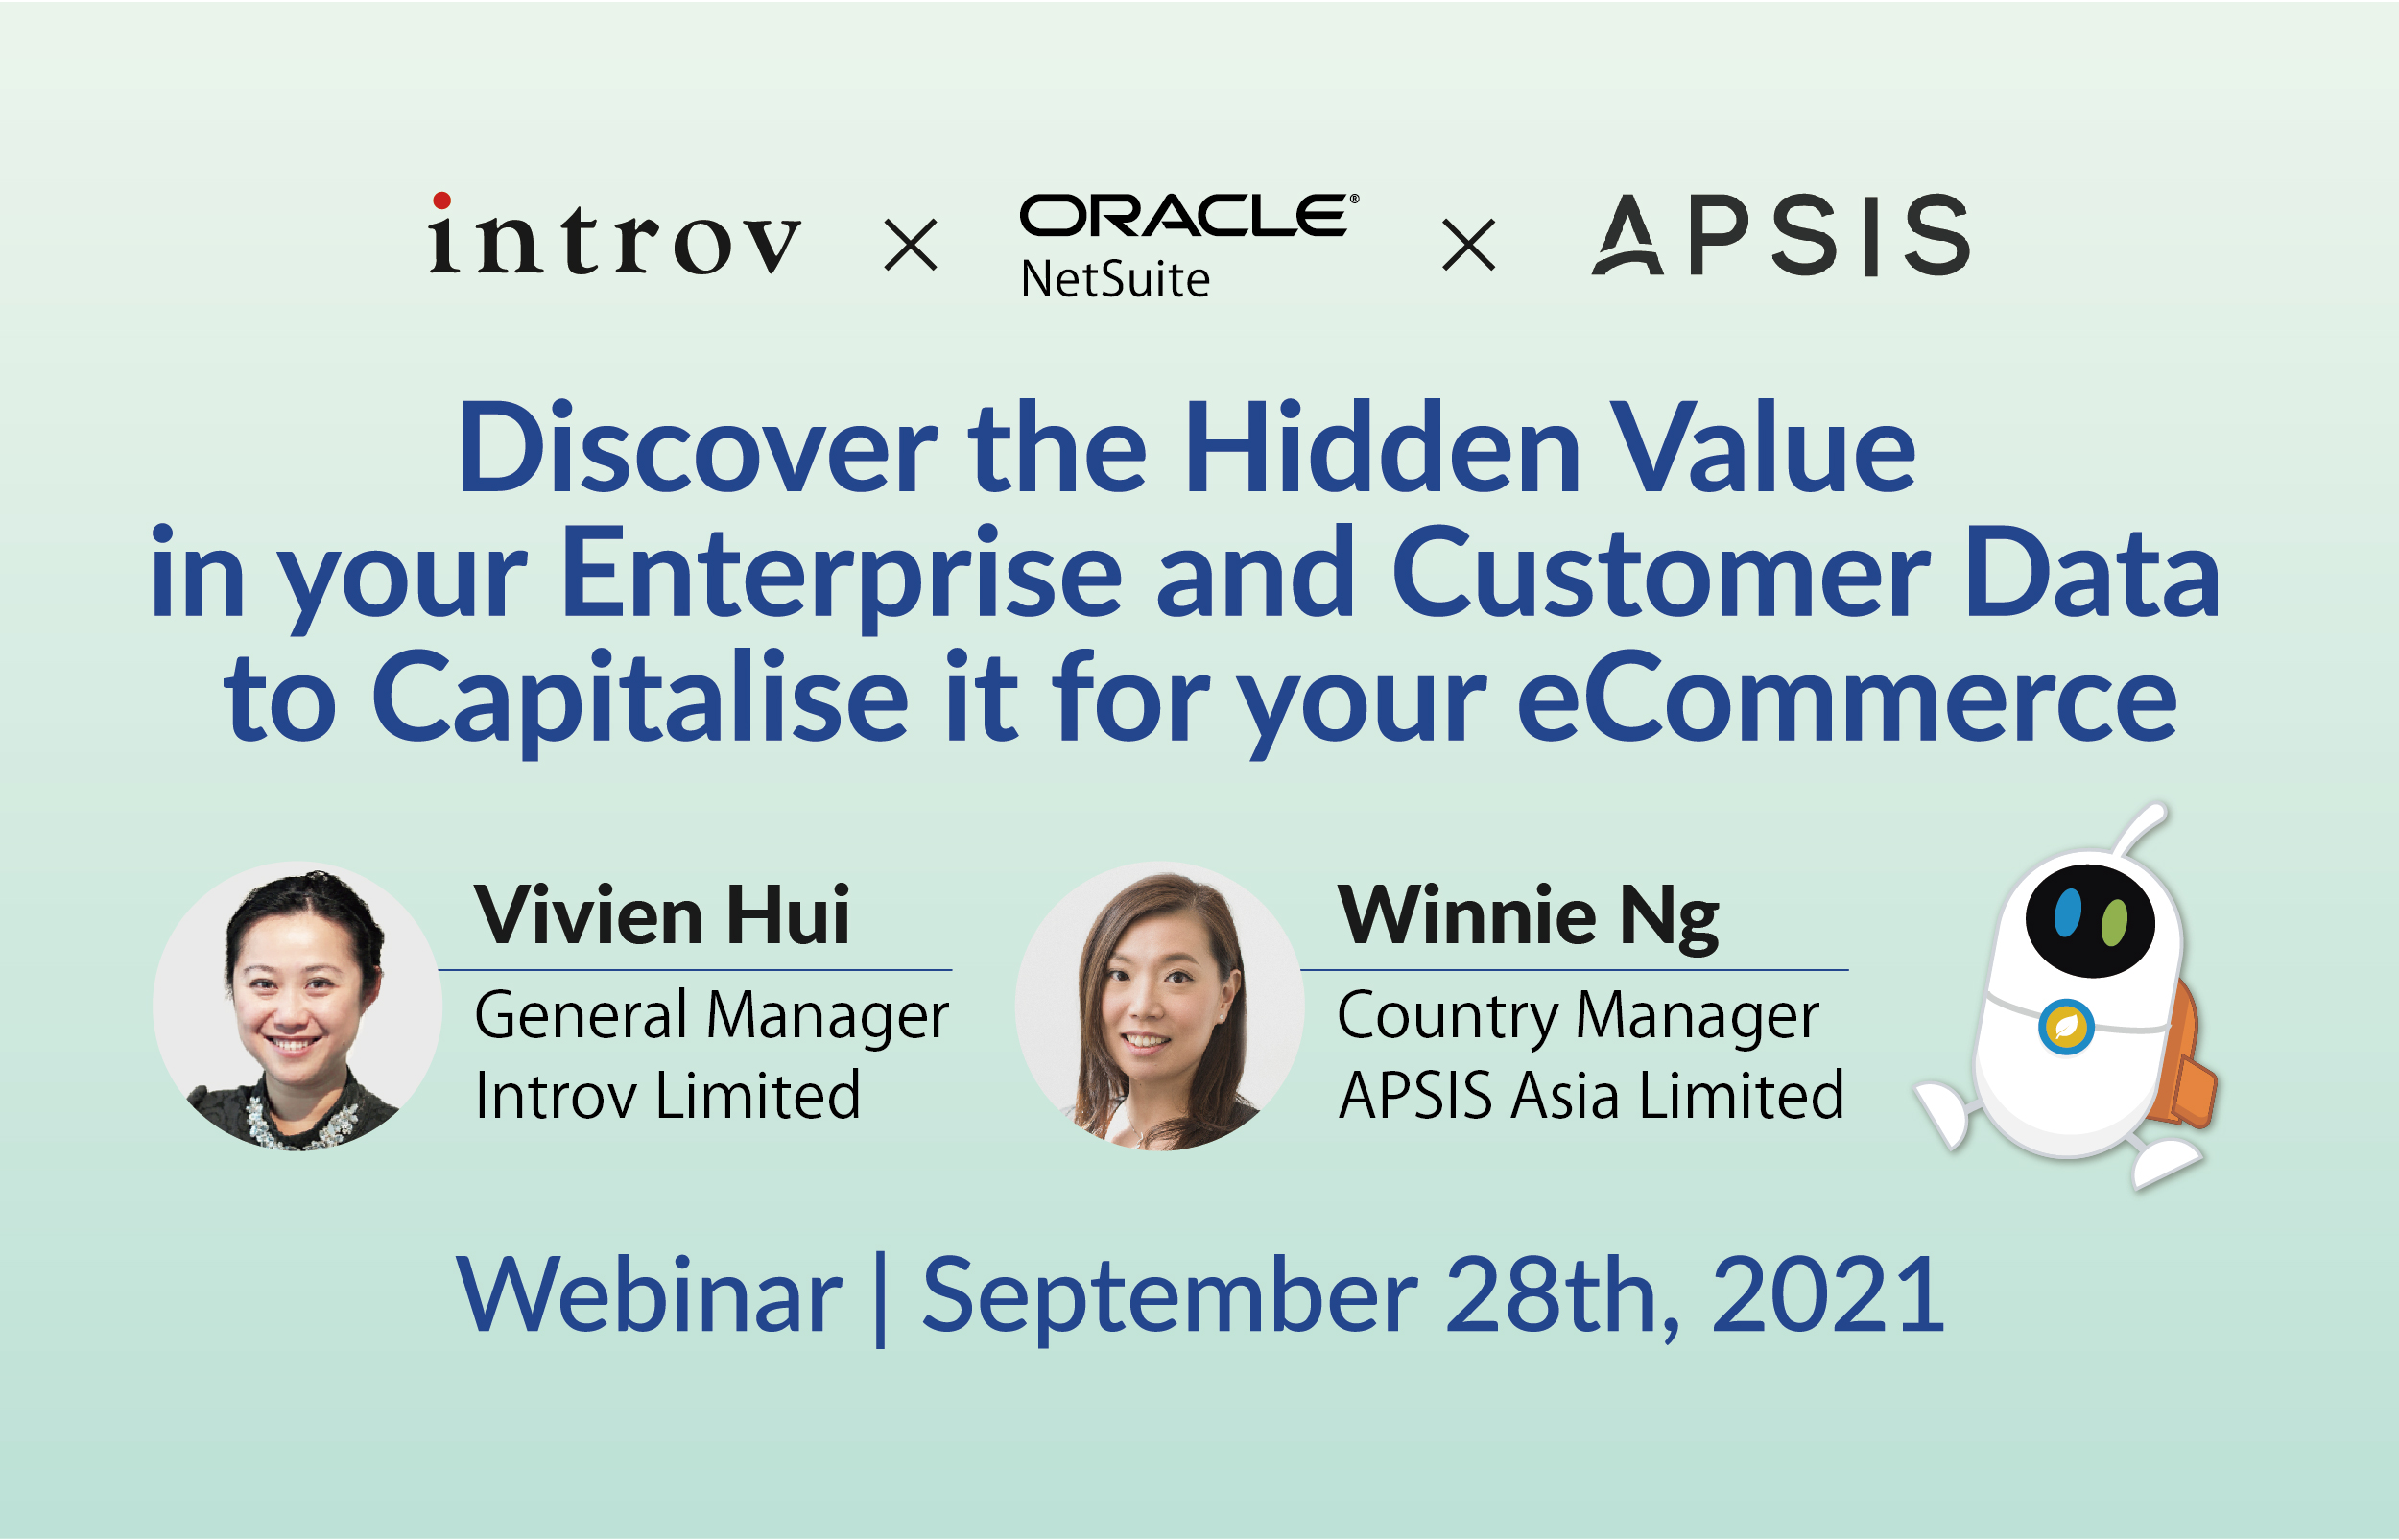 Webinar: Discover the Hidden Value in your Enterprise and Customer Data to Capitalise it for your eCommerce (September 28th, 2021)